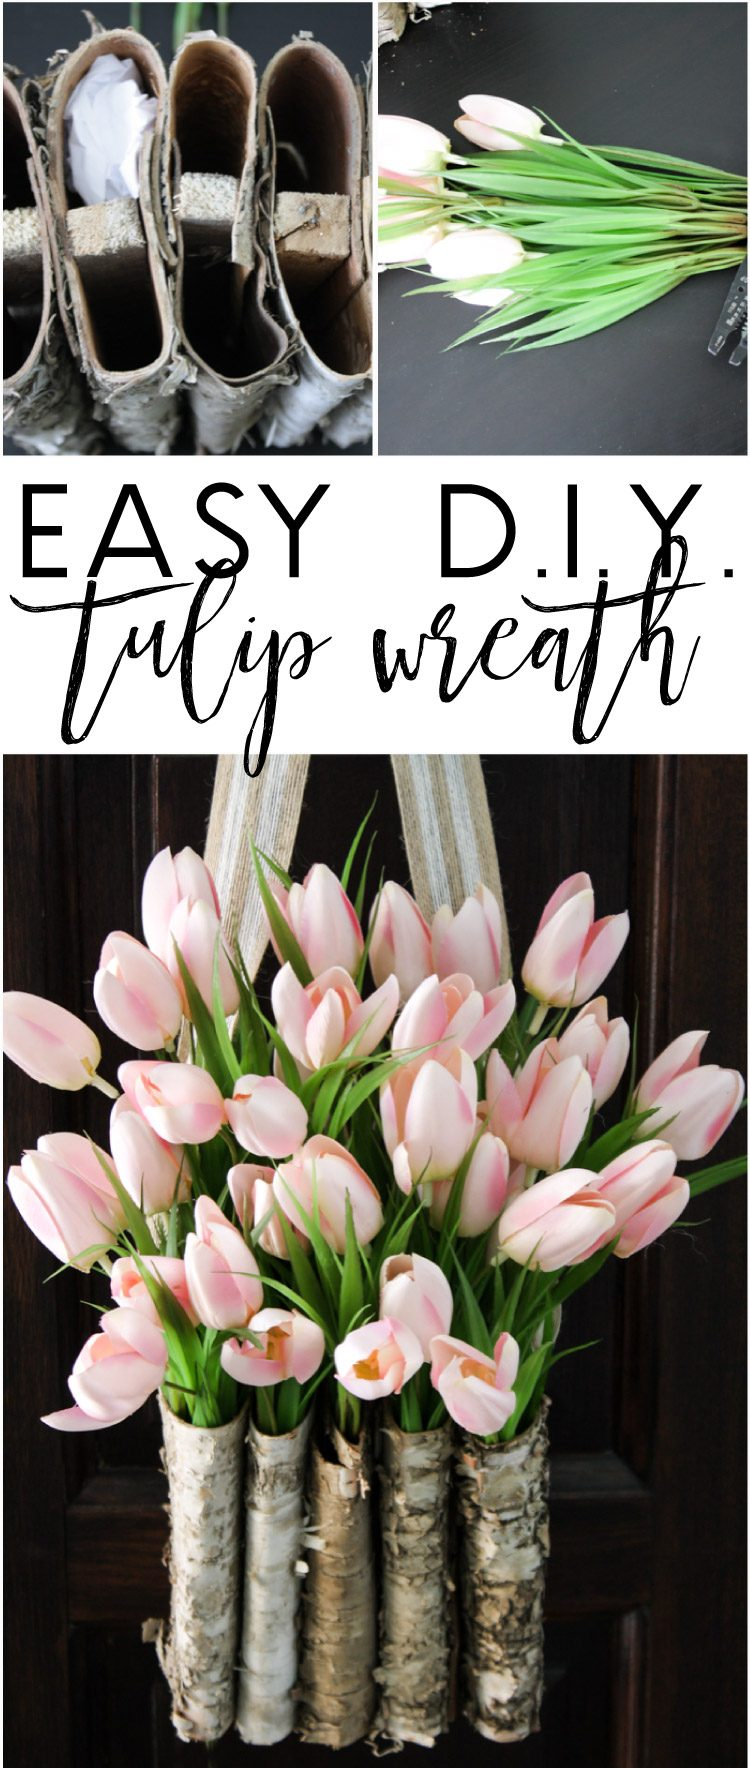 This is STUNNING! Learn to create a DIY tulip wreath with this full tutorial. It is easy and only takes 10 minutes! Tulip door wreaths are the perfect decoration for spring. Learn how to make door wreaths with this simple and fun tulip wreath tutorial!